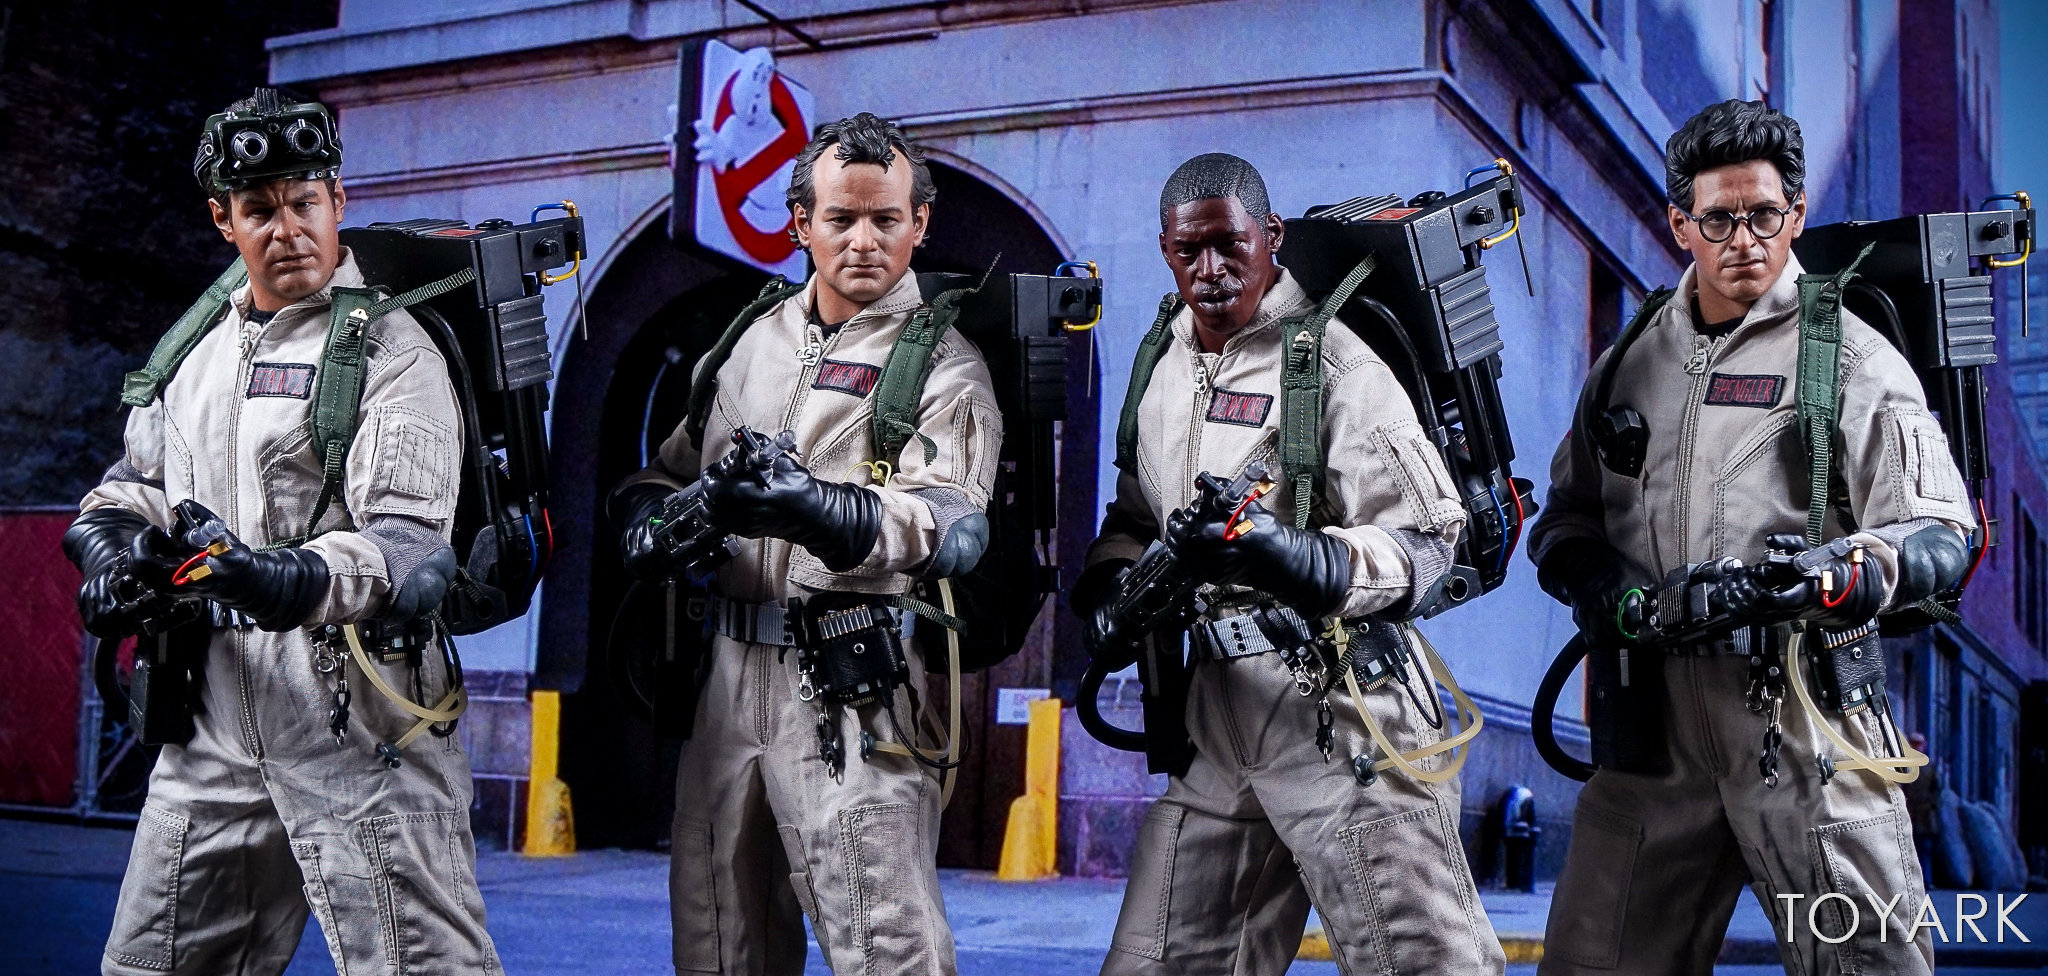 http://news.toyark.com/wp-content/uploads/sites/4/2017/10/Blitzway-Ghostbusters-Special-Set-195.jpg